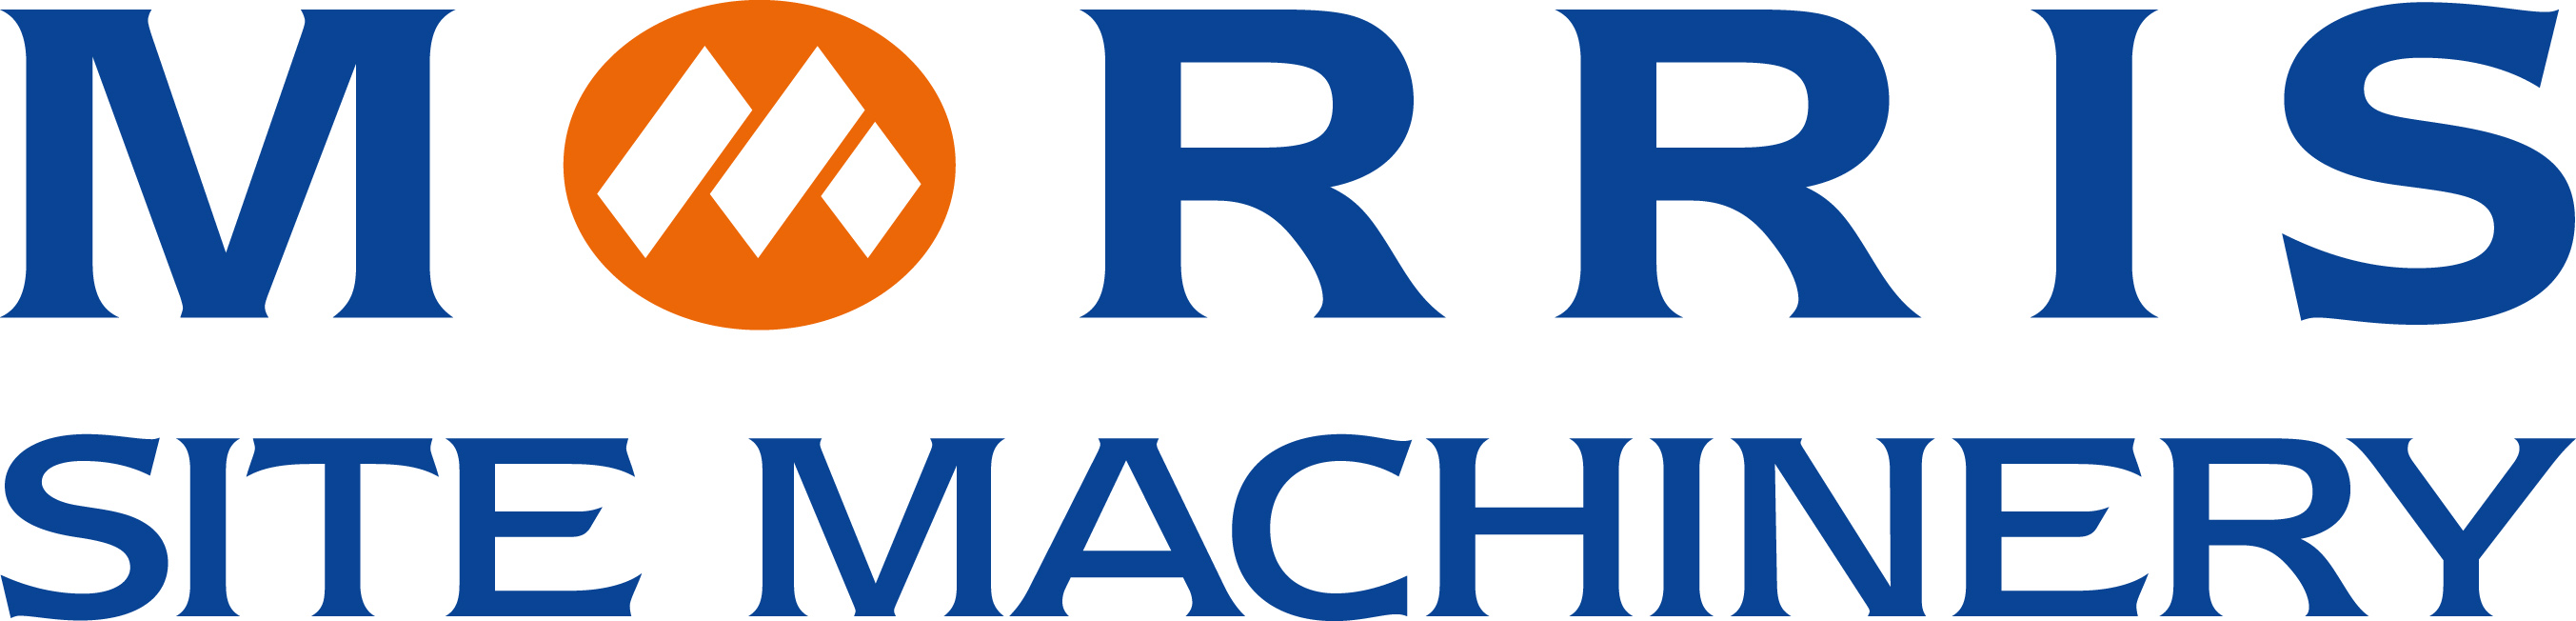 Morris_Site_Machinery_logo.jpg